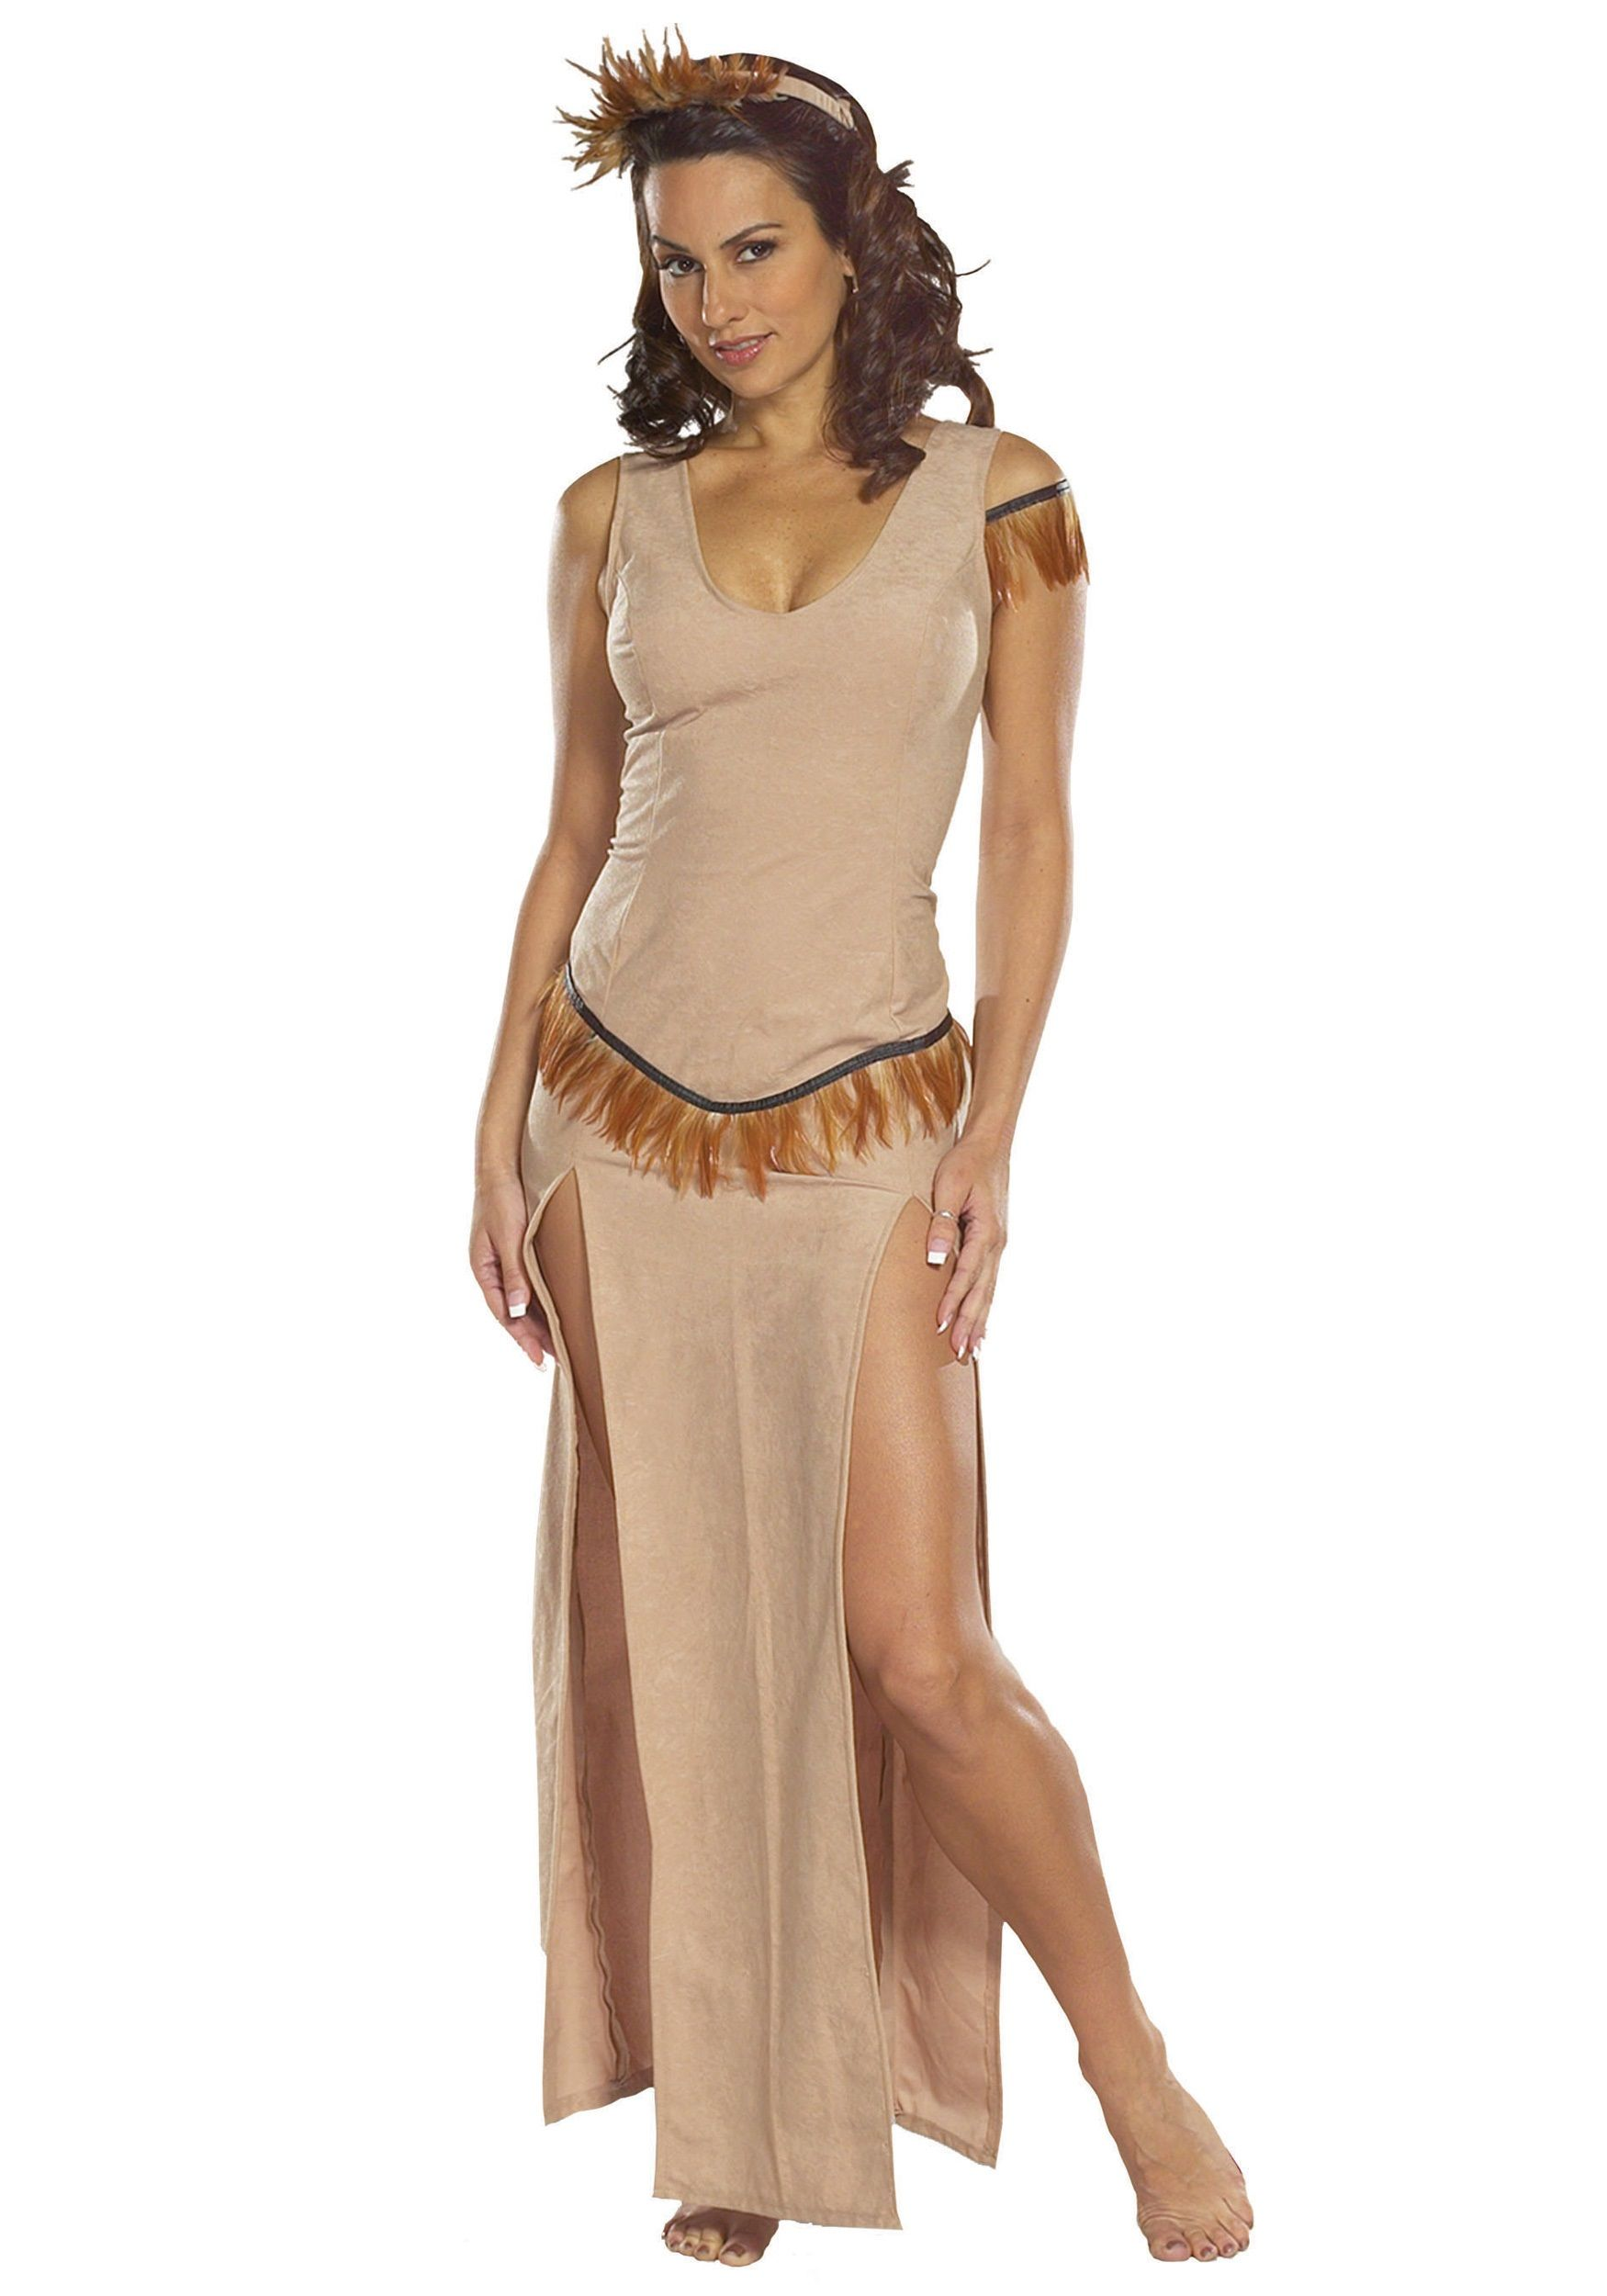 Native American Indian Costumes Adults | Sexy Indian Halloween Costumes  sc 1 st  Pinterest & Native American Indian Costumes Adults | Sexy Indian Halloween ...